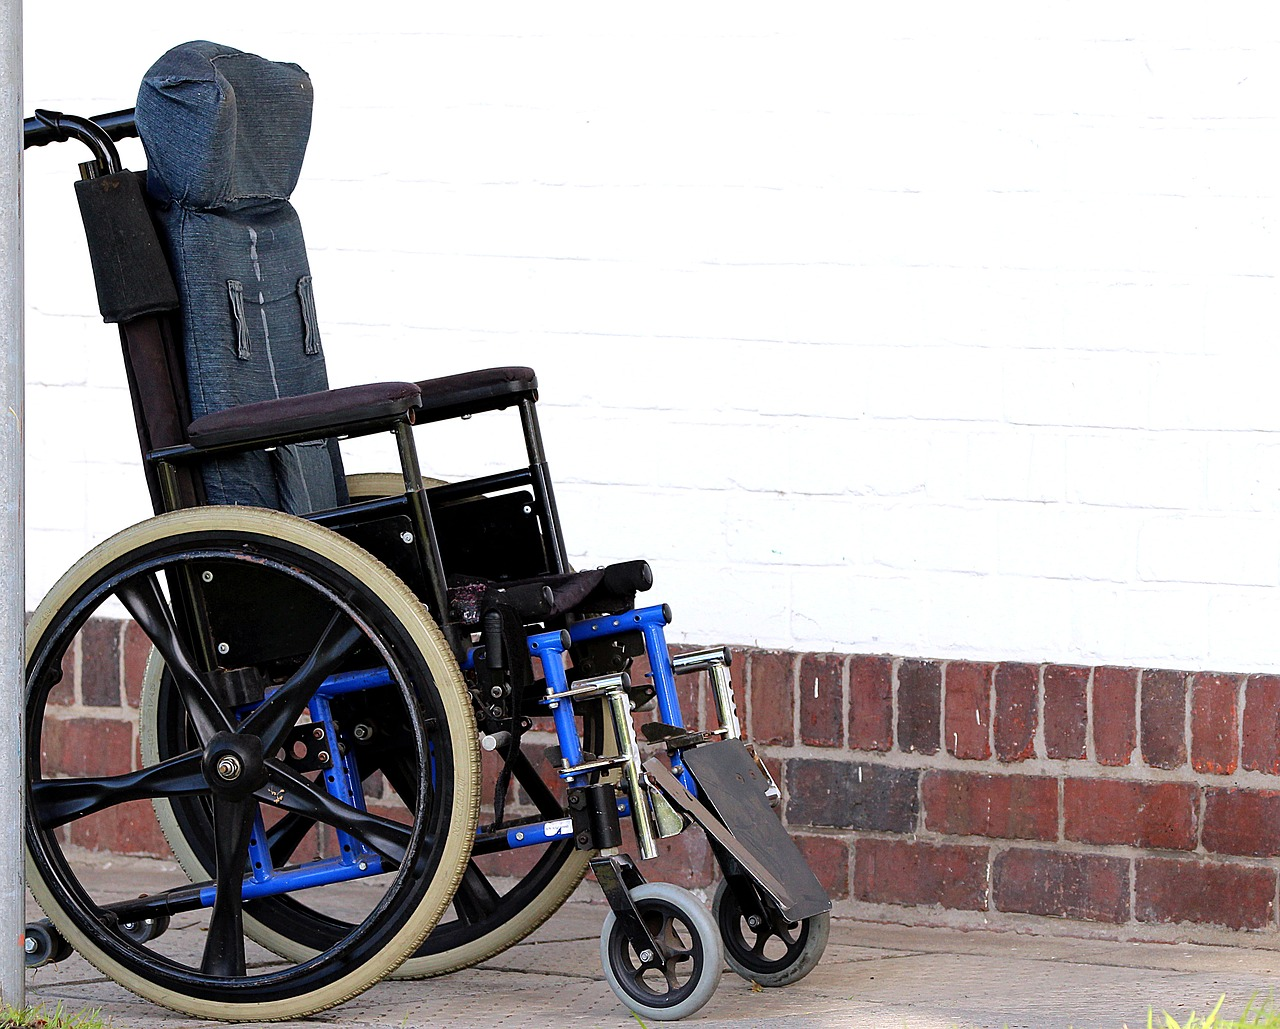 Download free photo of Wheelchair,disability,lame,handicap,locomotion - from needpix.com